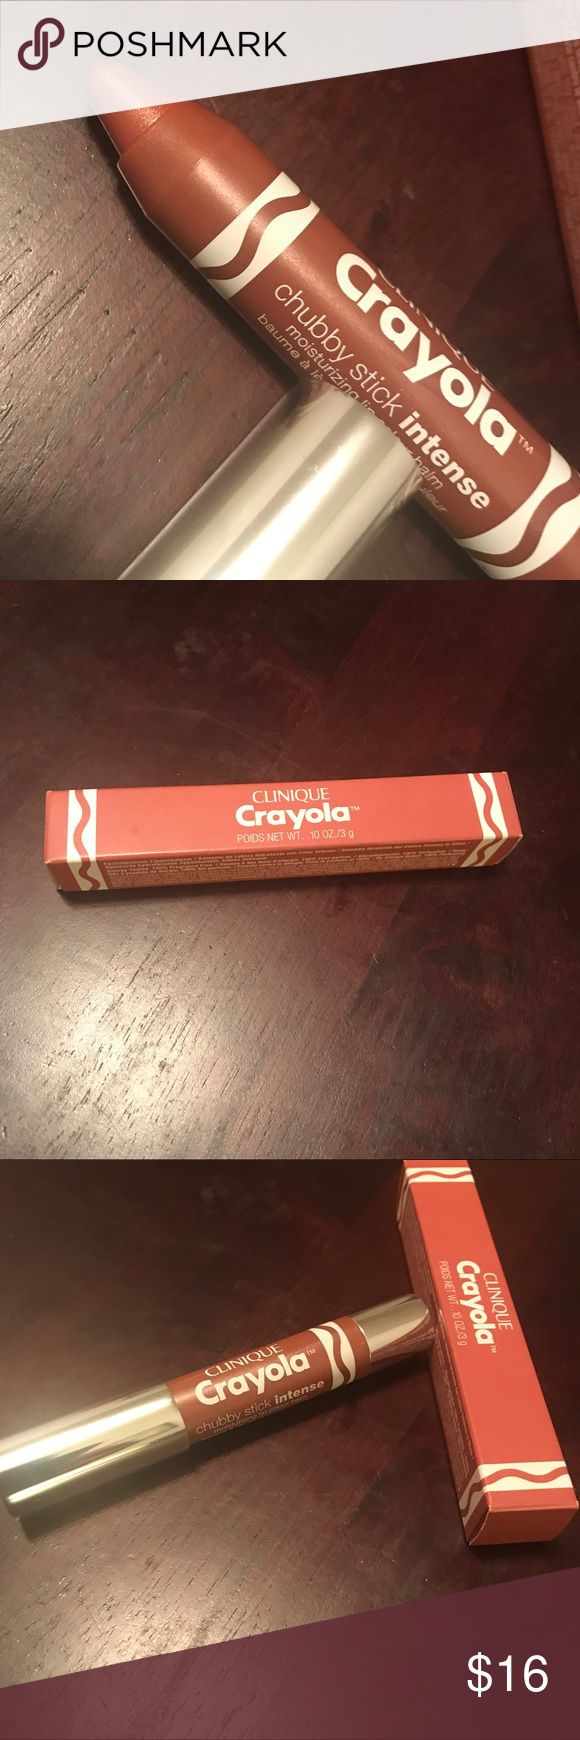 Clinique Crayola Chubby Stick | Fuzzy Wuzzy Limited edition chubby stick (lippie) in collaboration with Crayola in the shade nude shade Fuzzy Wuzzy.       New never used Clinique Makeup Lip Balm & Gloss